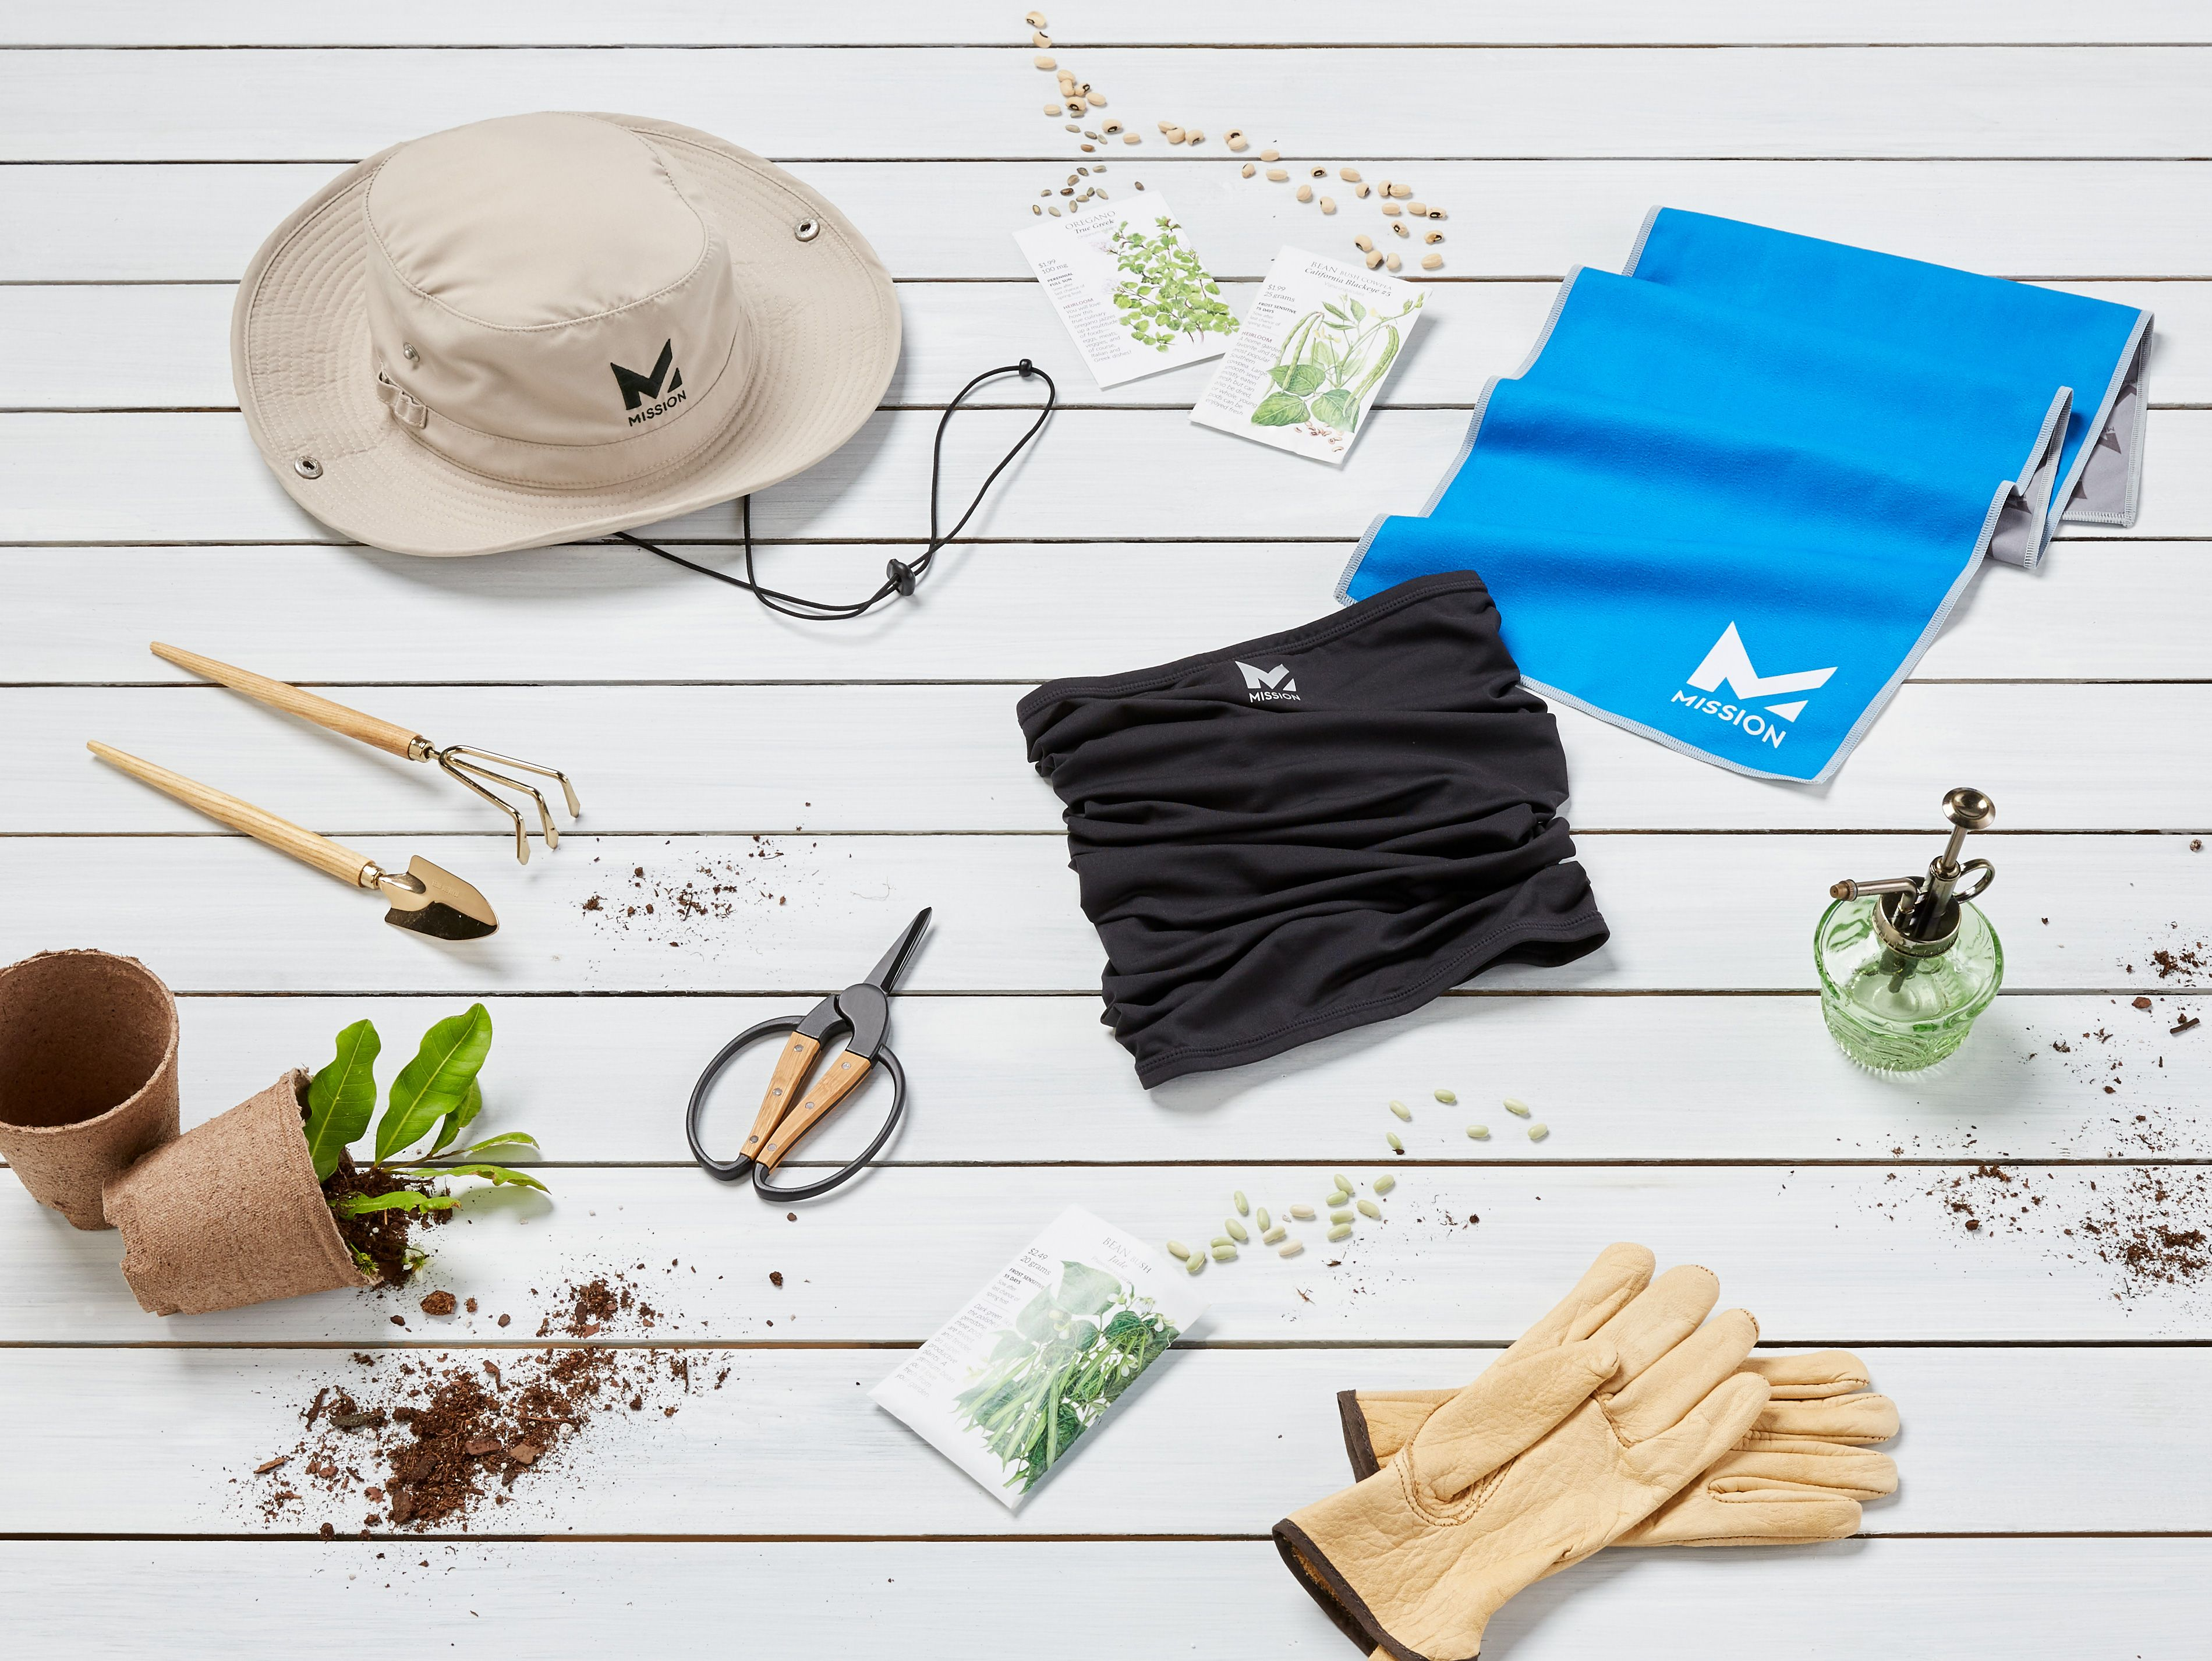 Grab Our Gardening Accessories To Stay Cool In The Heat Mission